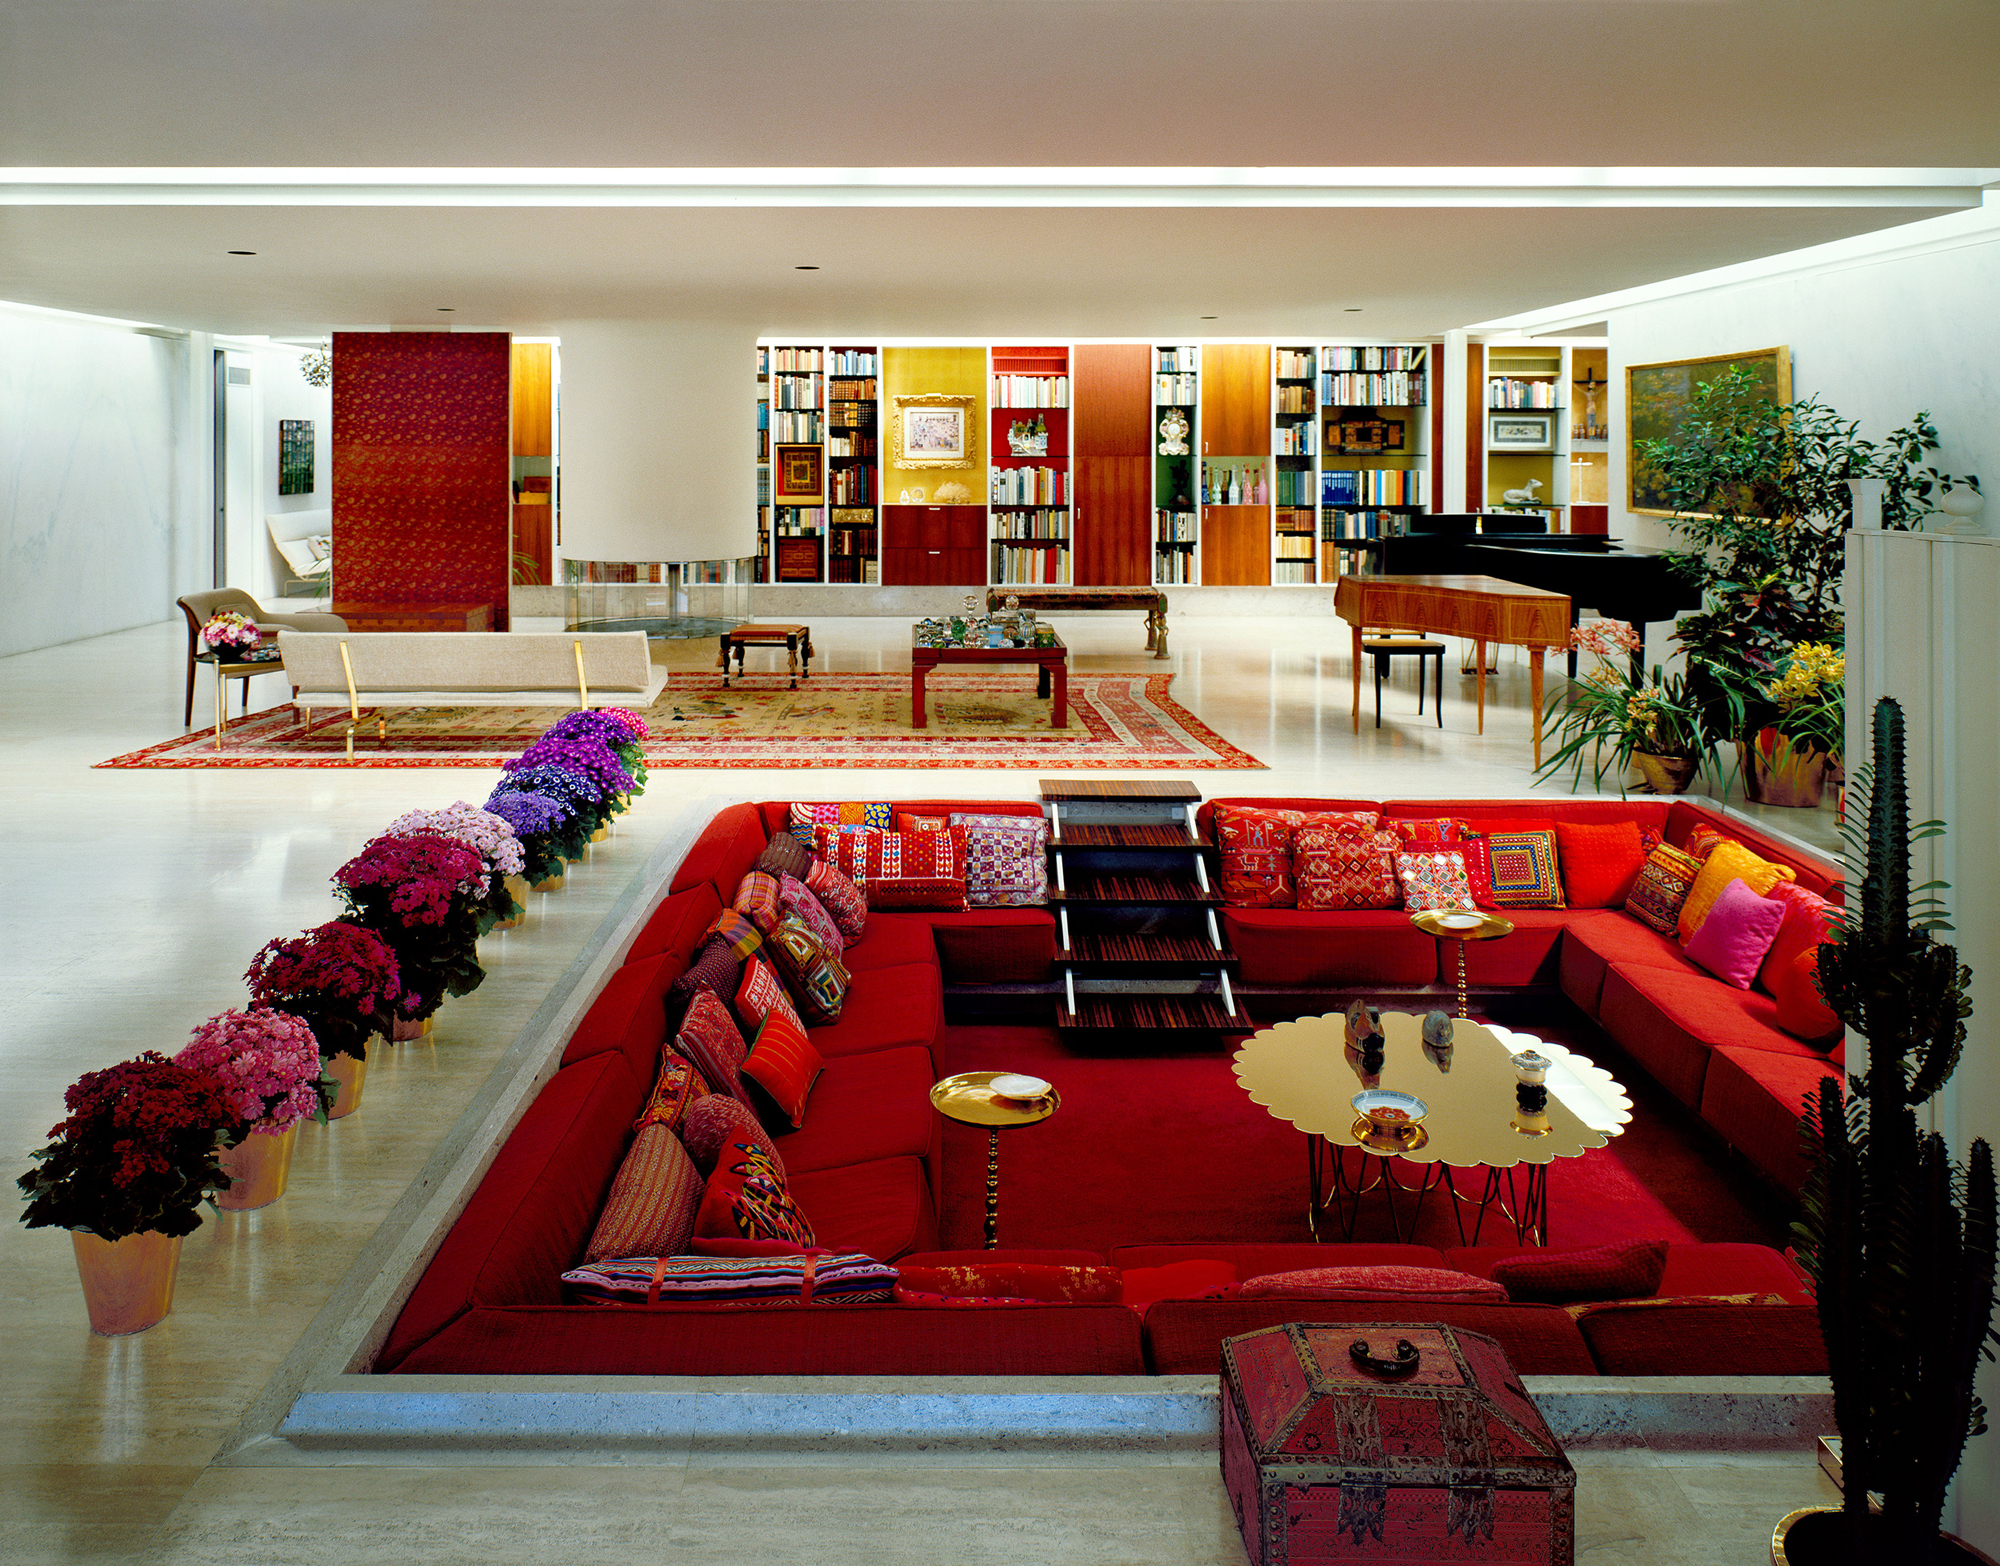 Mad Men Inspired Home Decor: The Best of the 1960s Interior Design Trends